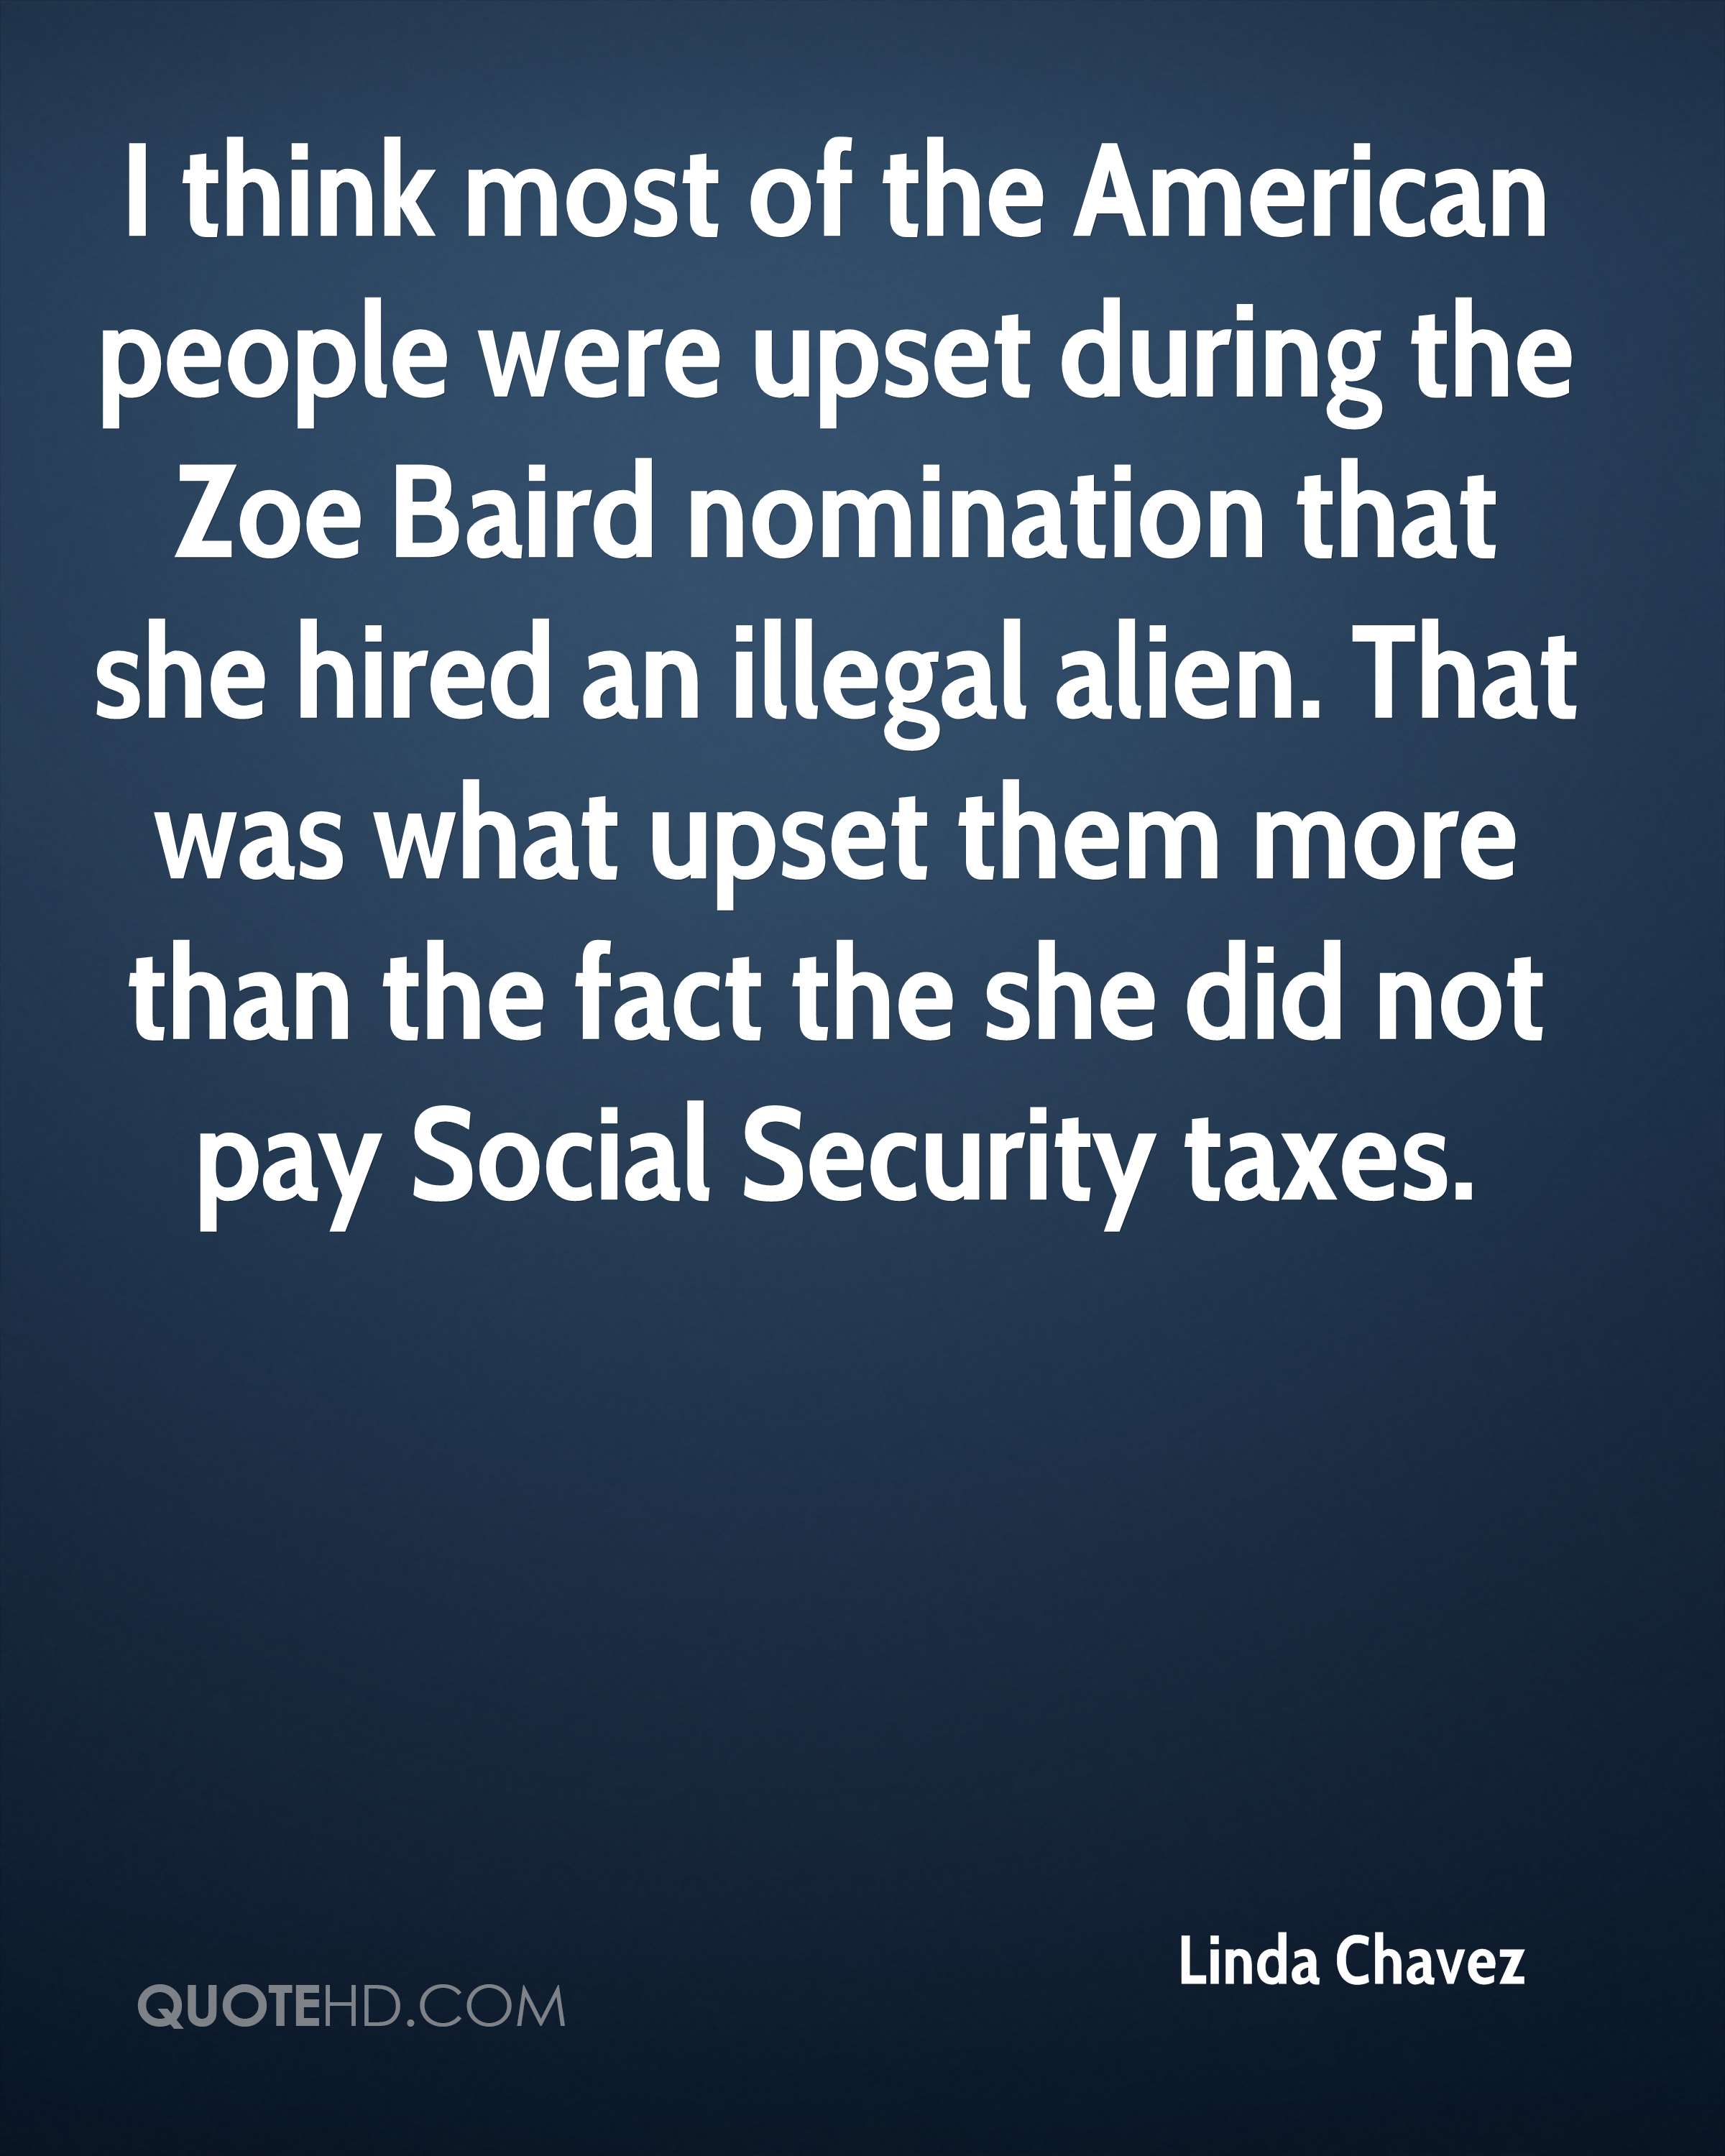 I think most of the American people were upset during the Zoe Baird nomination that she hired an illegal alien. That was what upset them more than the fact the she did not pay Social Security taxes.